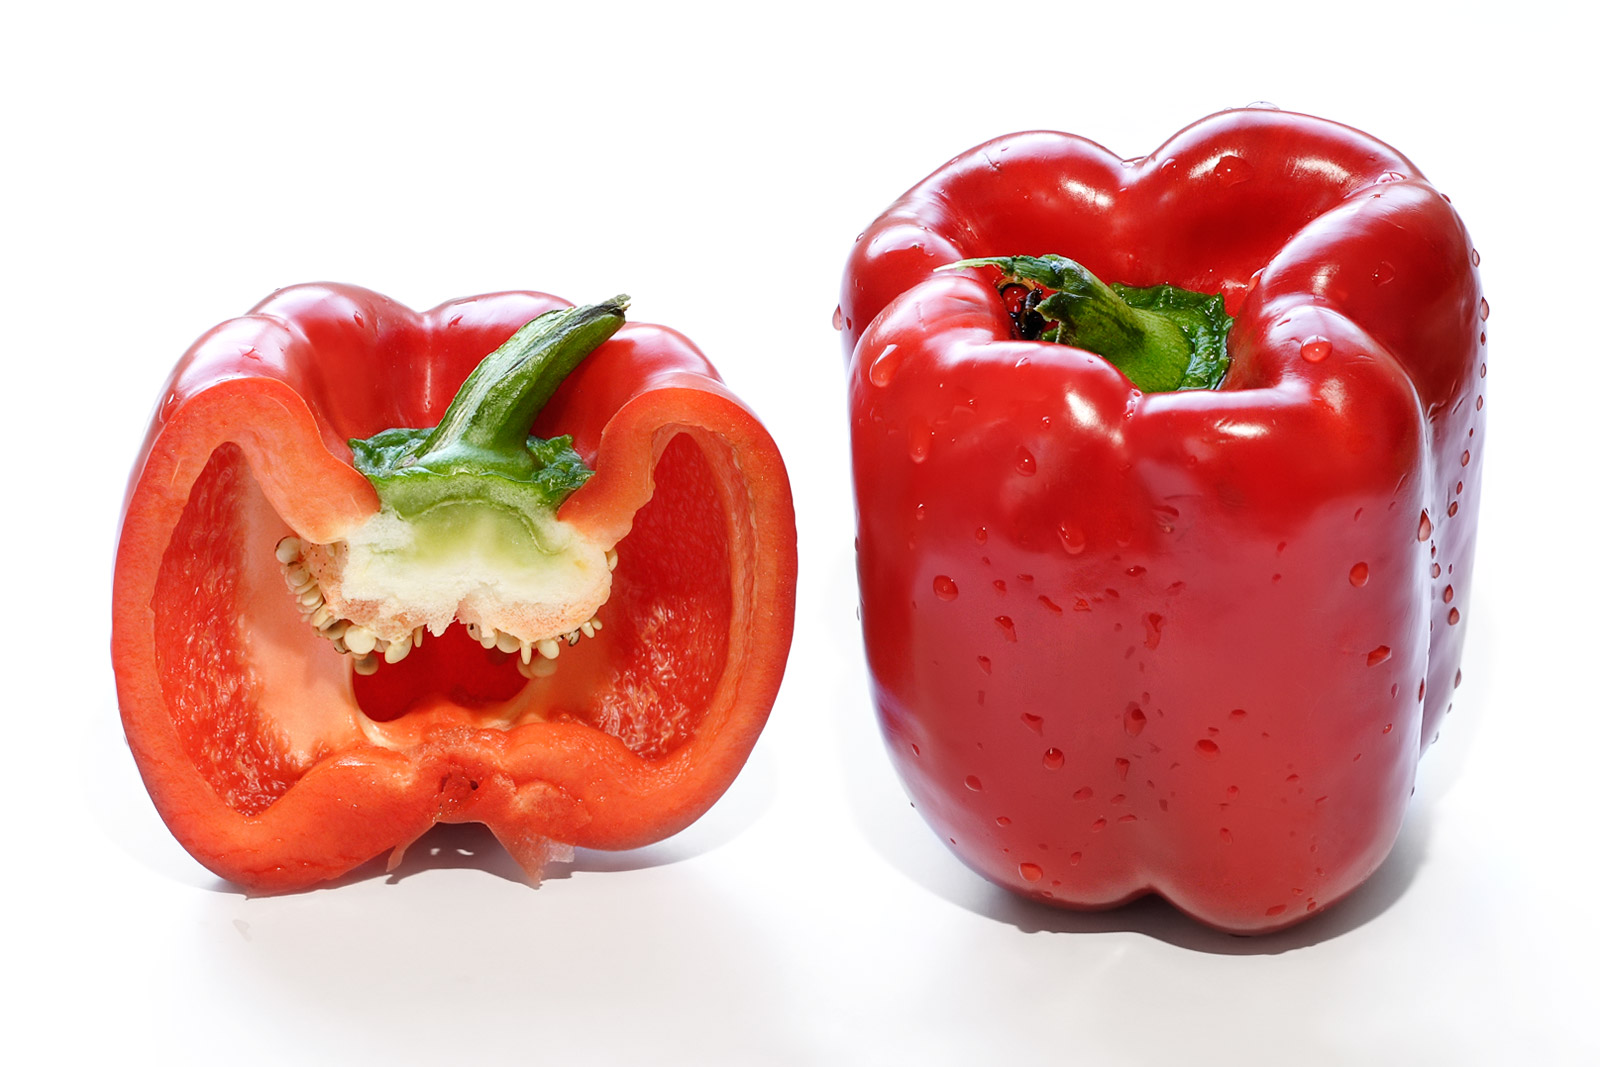 File:Red capsicum and cross section.jpg - Wikipedia, the free ...